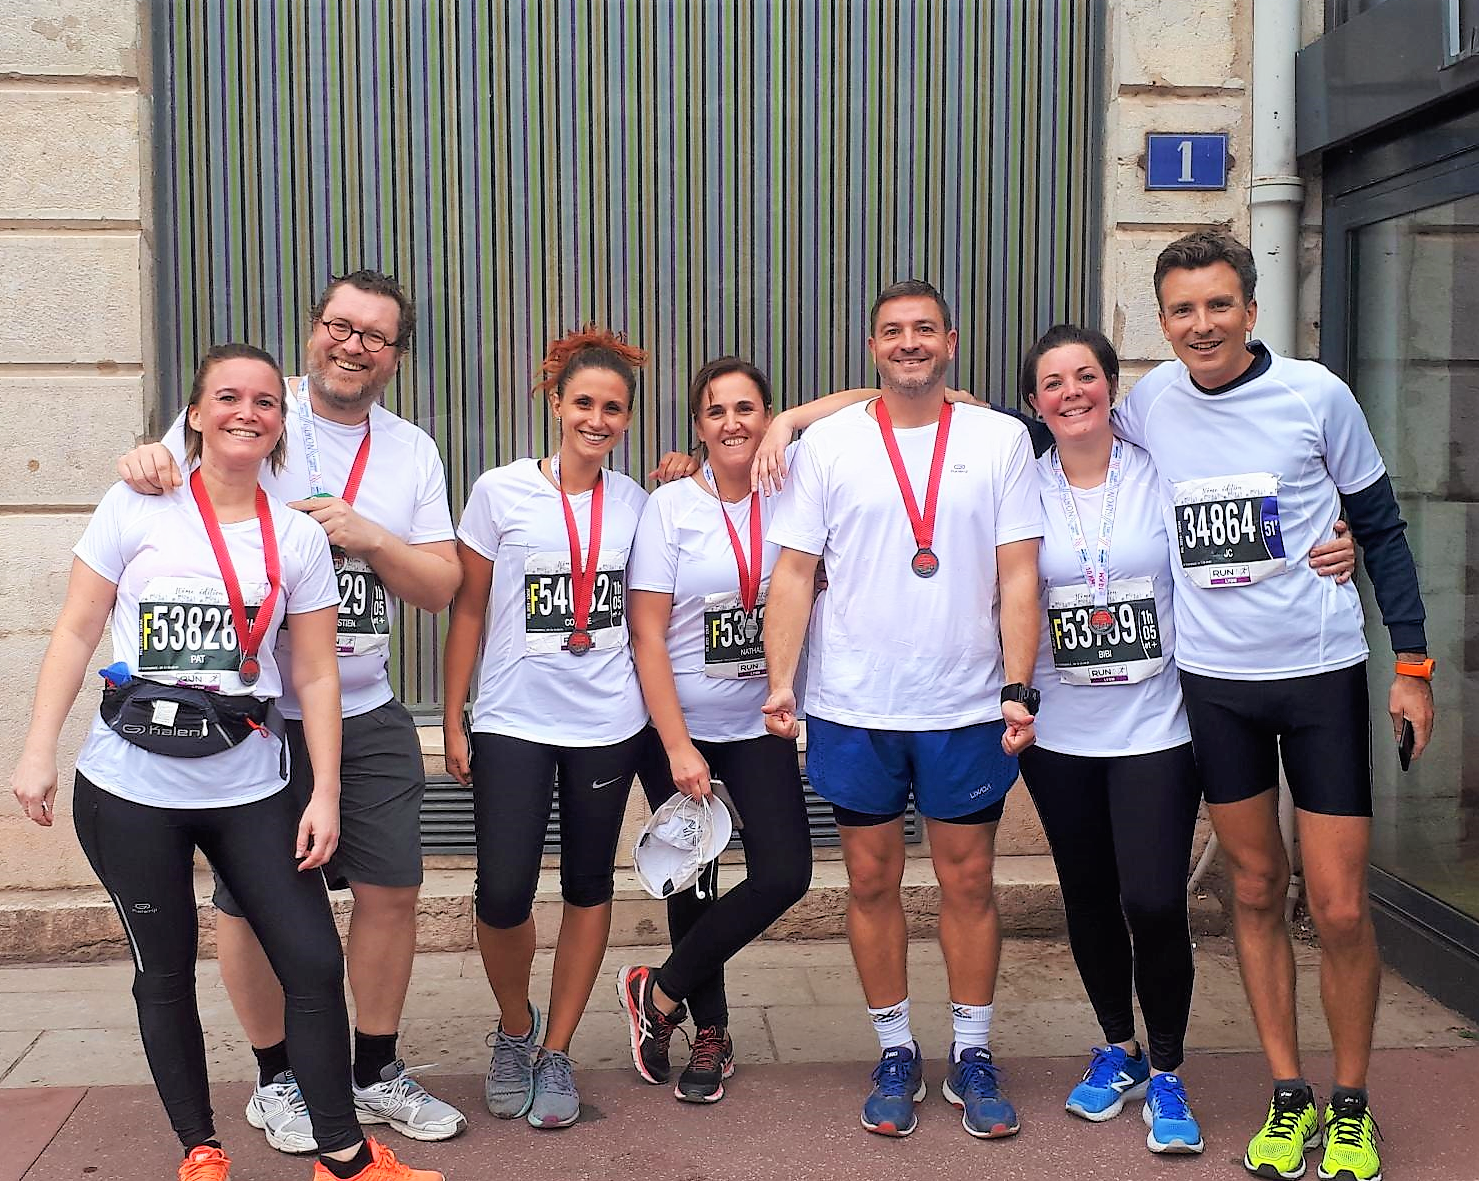 Run in Lyon, semi-marathon